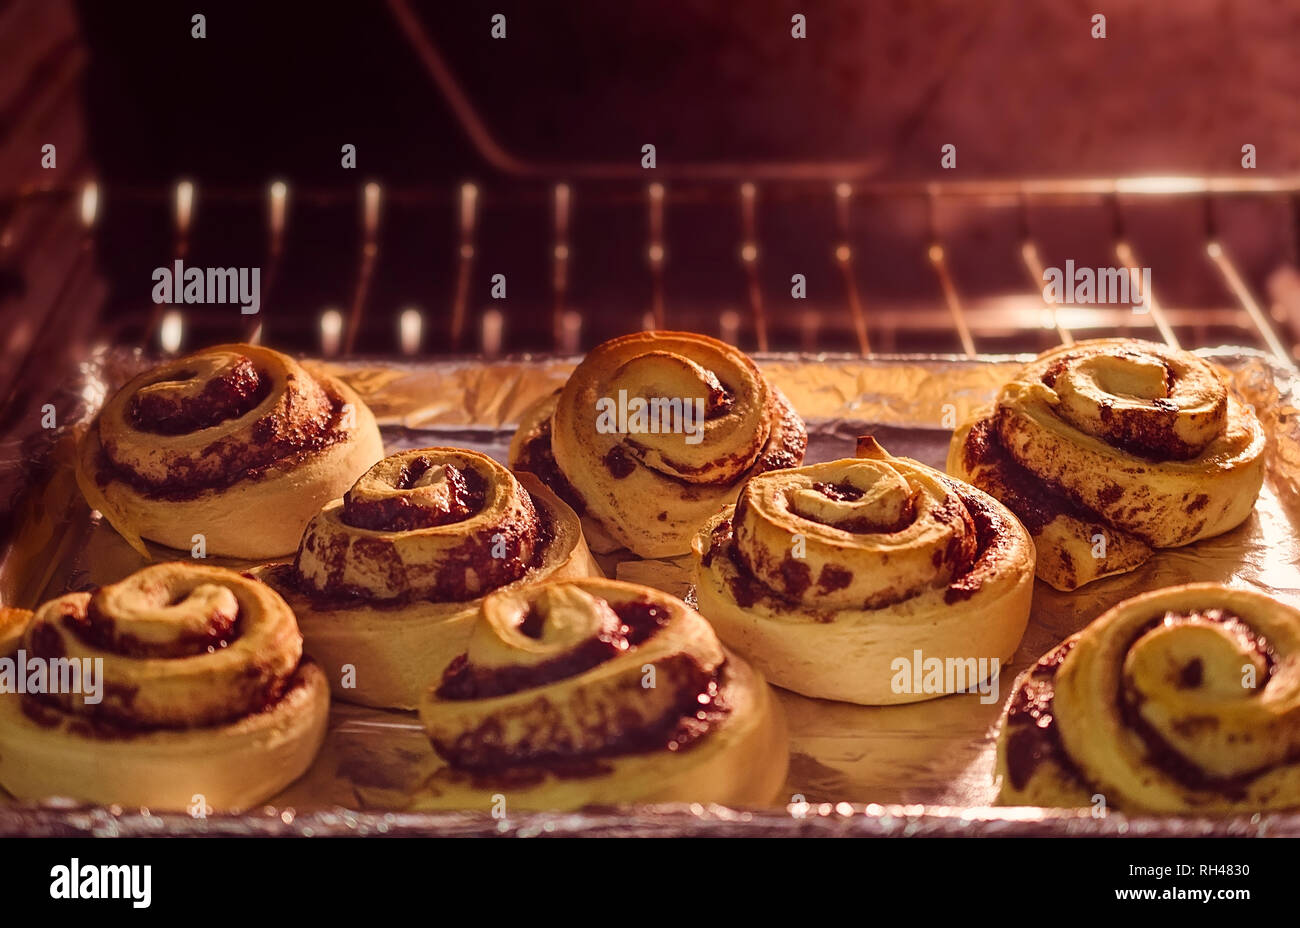 Cinnamon rolls bake in the oven, January 18, 2016, in Coden, Alabama. Stock Photo